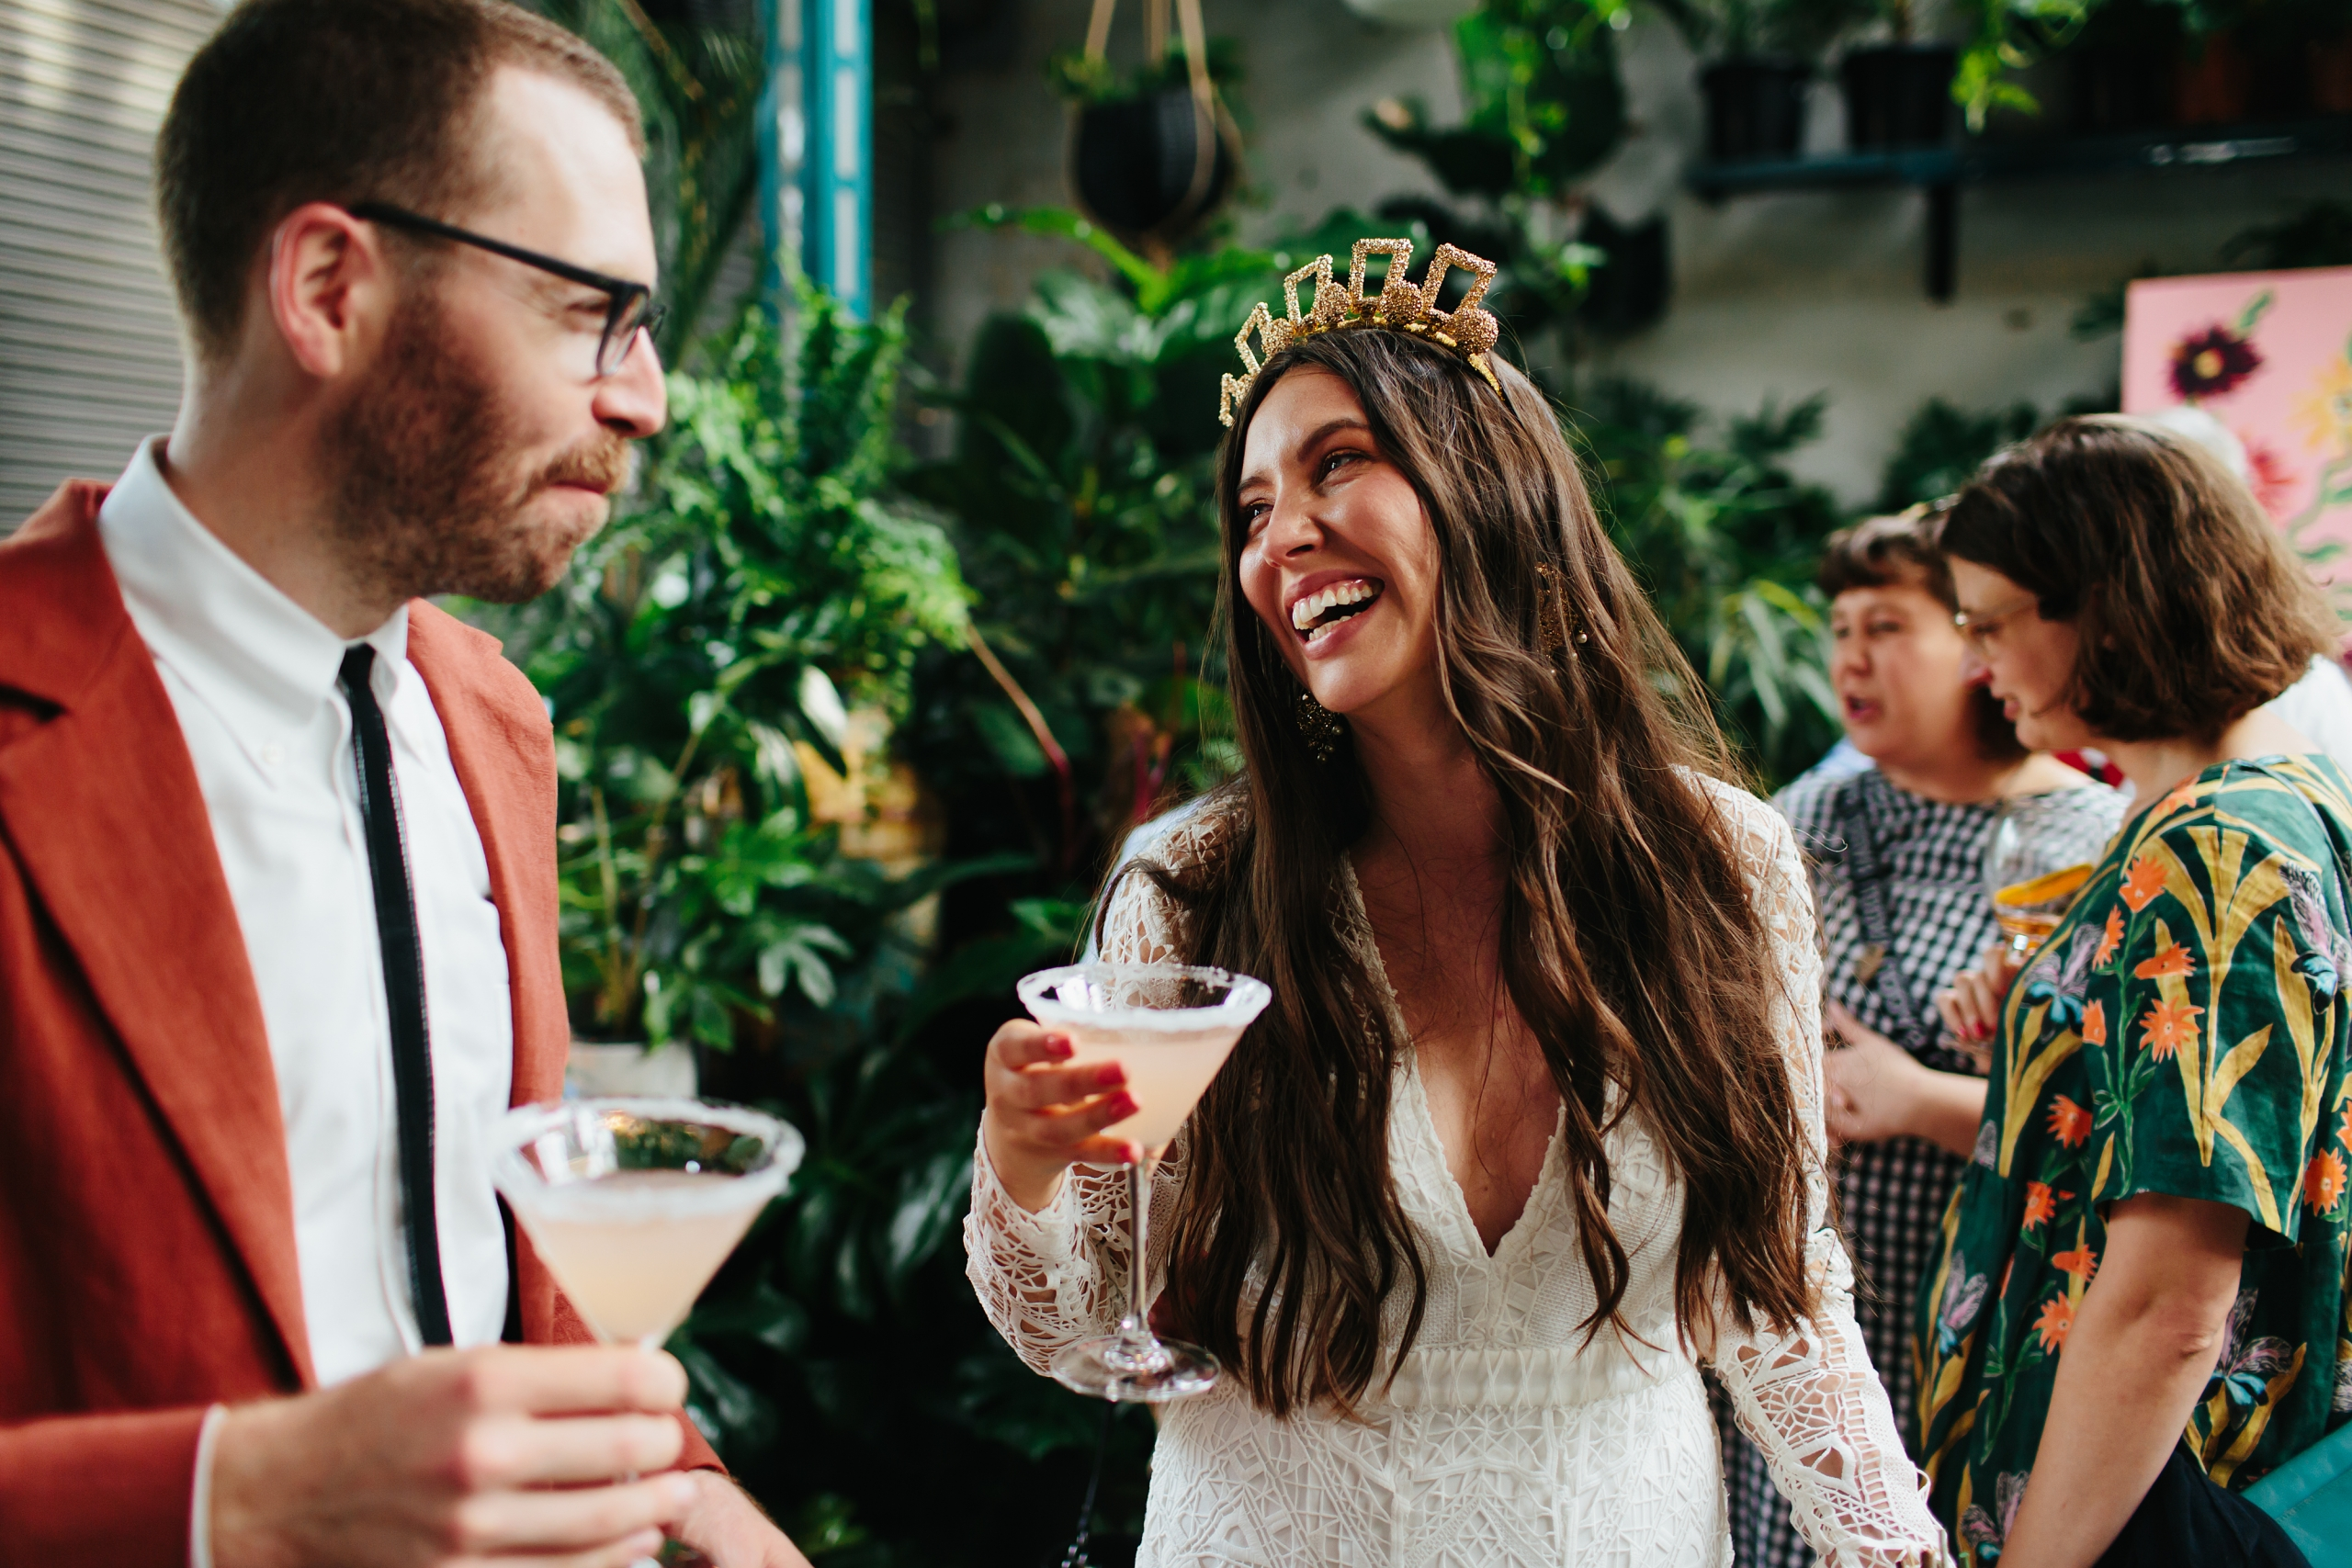 Why To Consider Having A DJ Play During Wedding Cocktail Hour